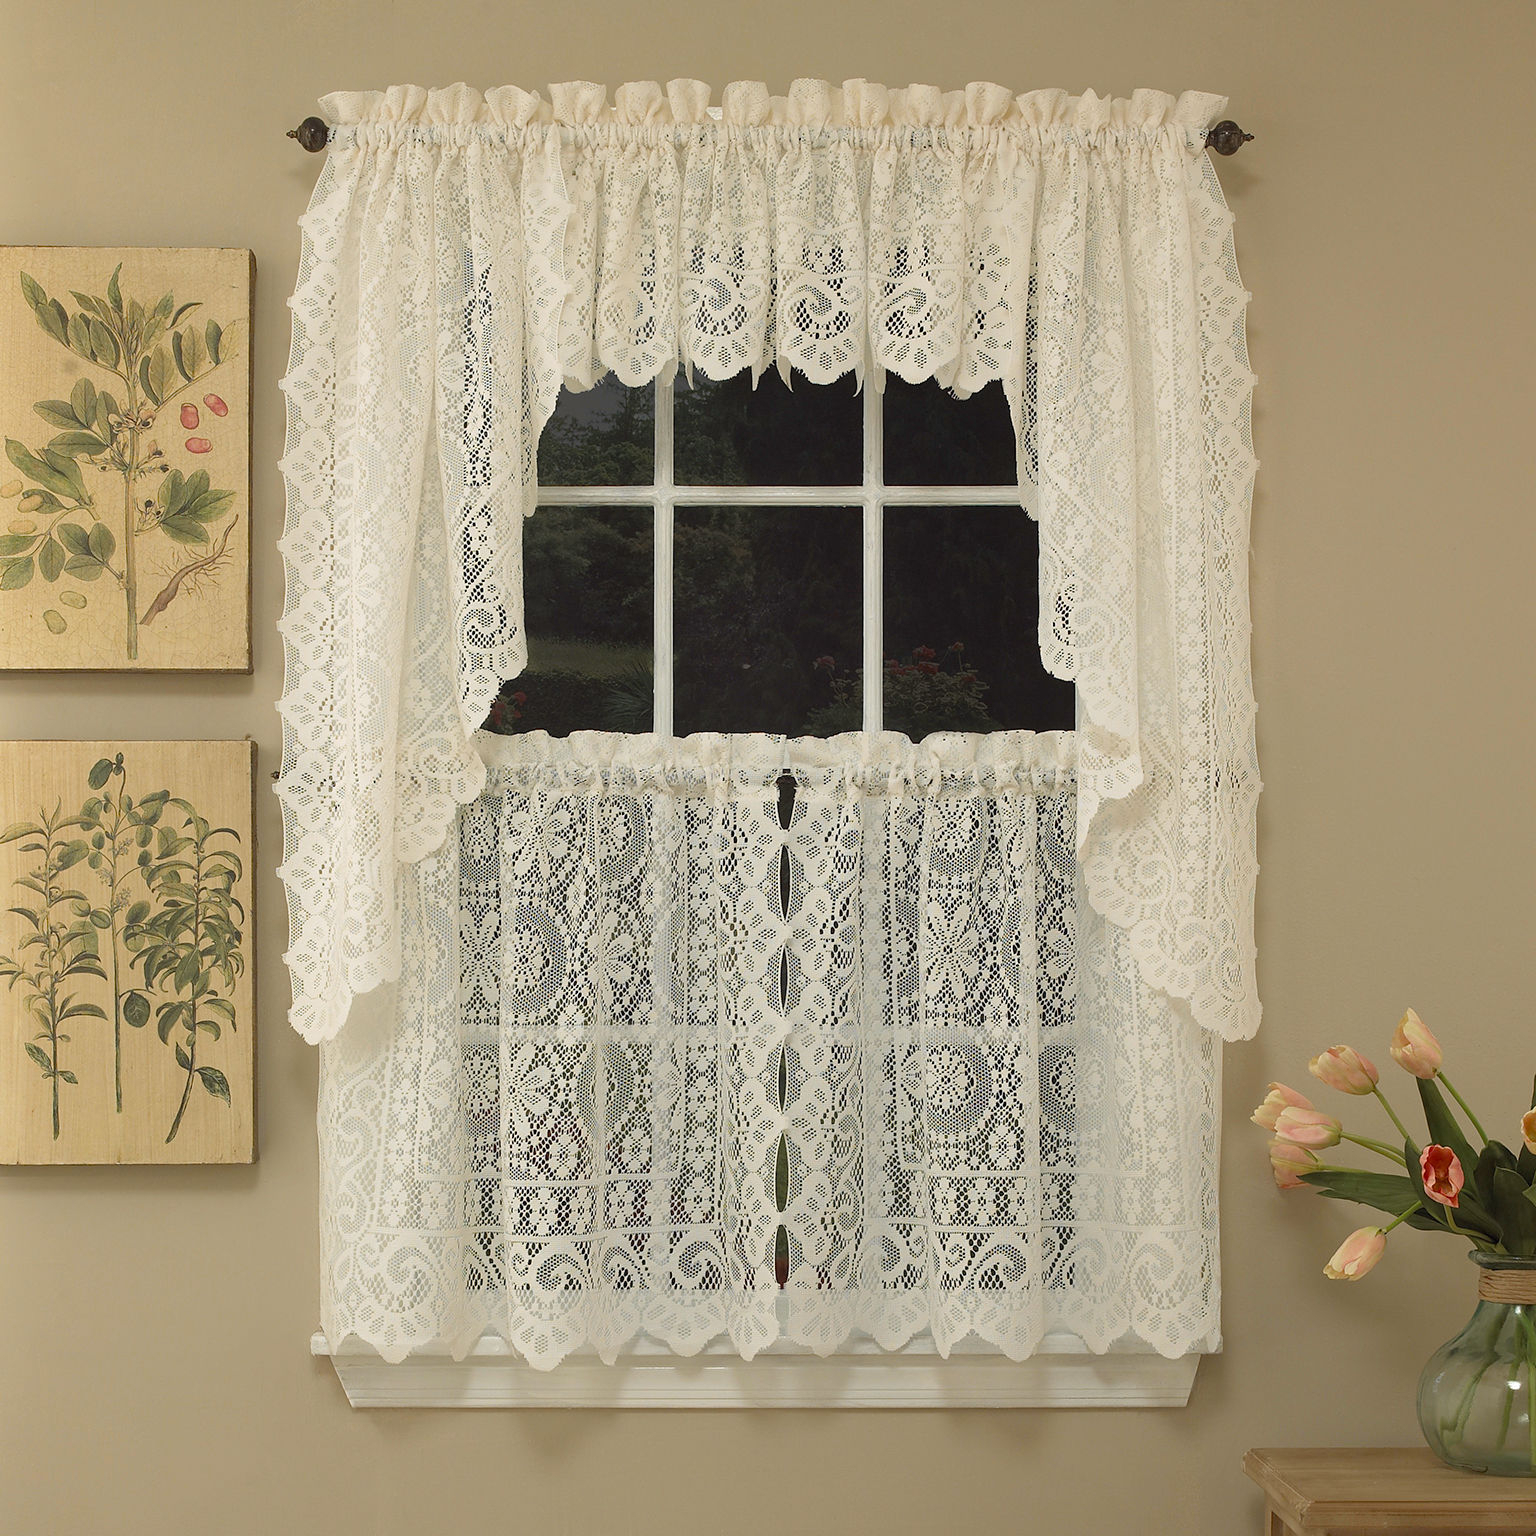 Current Hopewell Heavy Cream Lace Kitchen Curtain Choice Of Tier Valance Or Swag Regarding Luxurious Kitchen Curtains Tiers, Shade Or Valances (View 7 of 20)